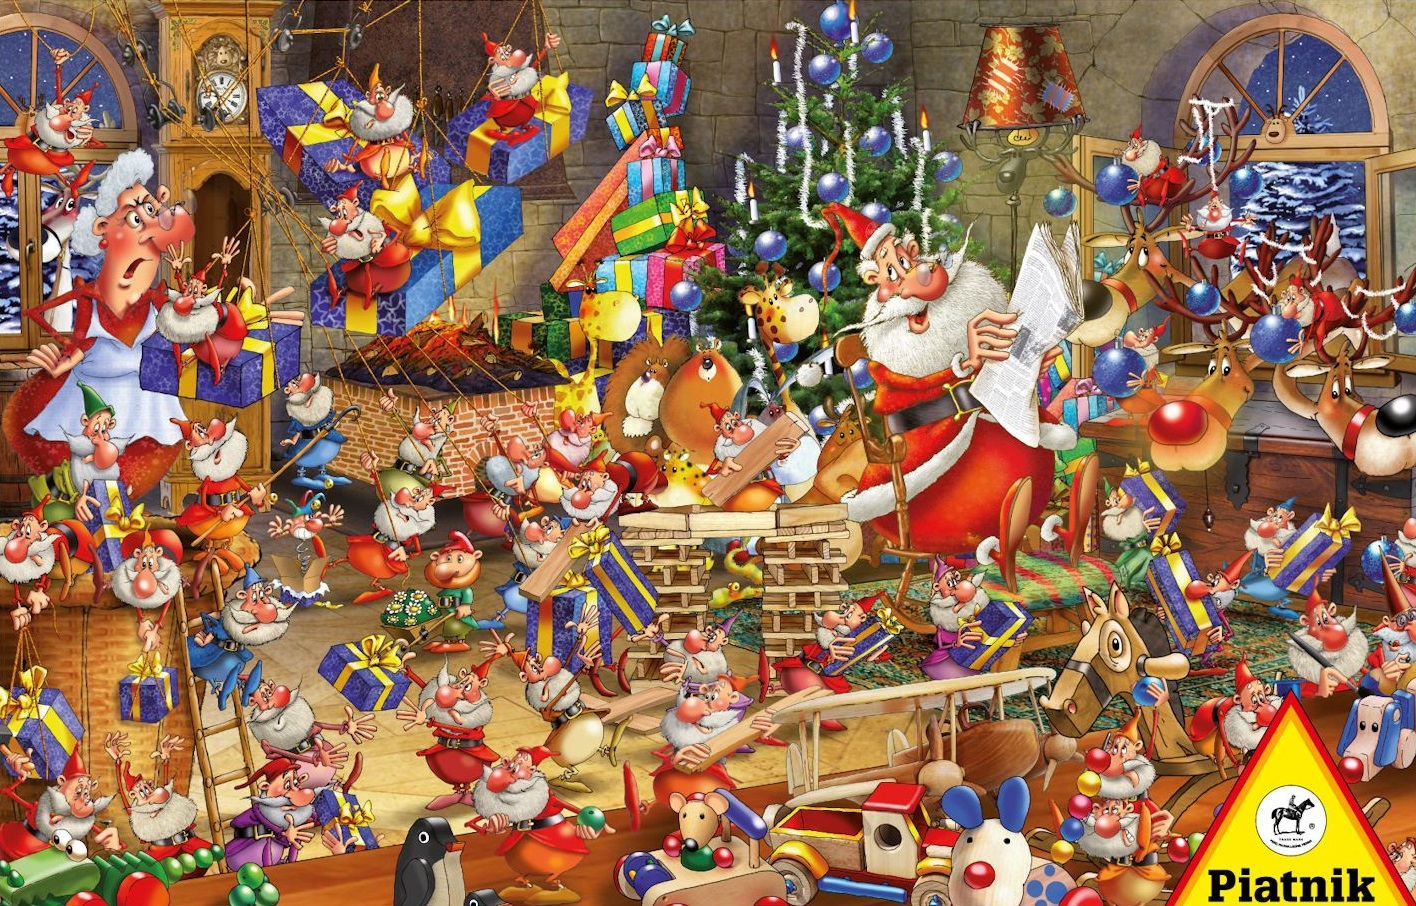 1000 piece seasonal jigsaw puzzle Christmas Chaos by artist Francois Ruyer manufacturered by Piatnik